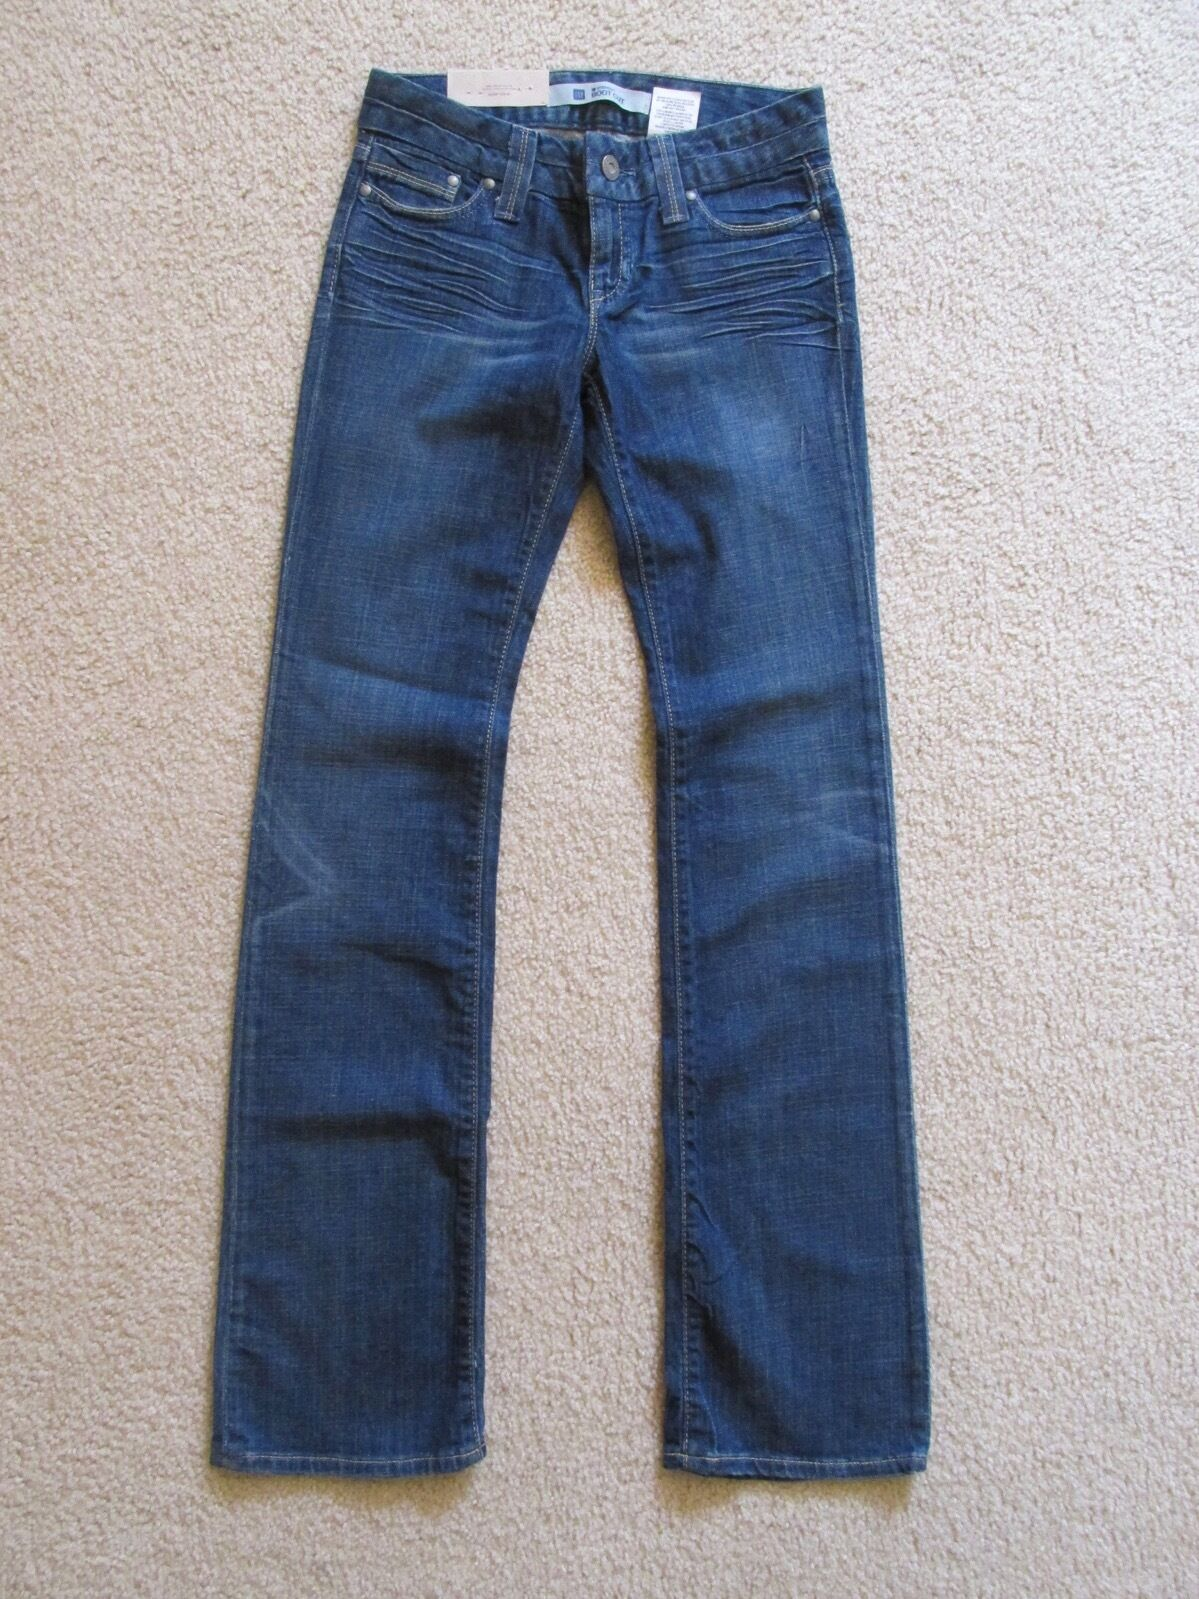 New with Tags Women's Gap Denim bluee Jeans Straight Bootcut Size 0 Long 0L